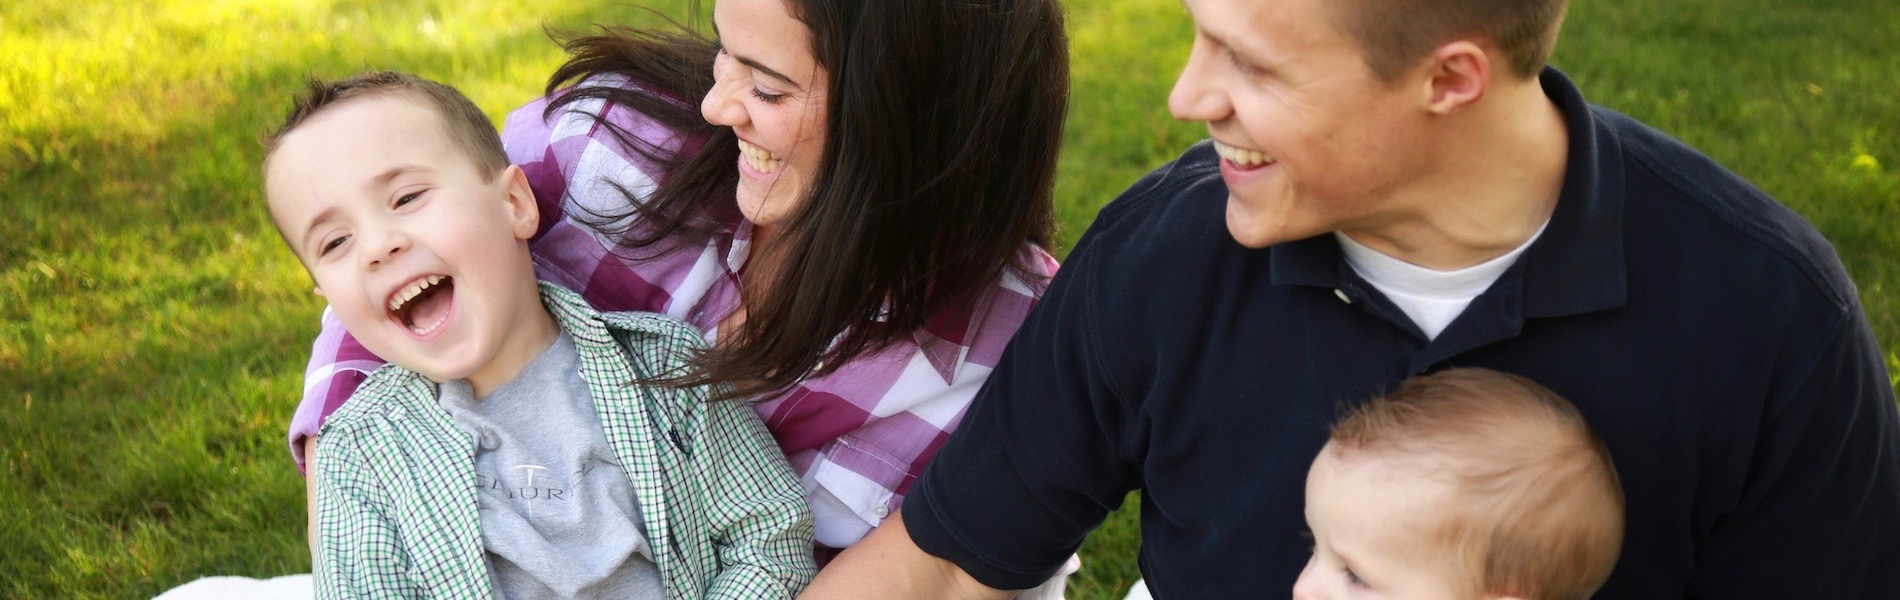 Family health through chiropractic